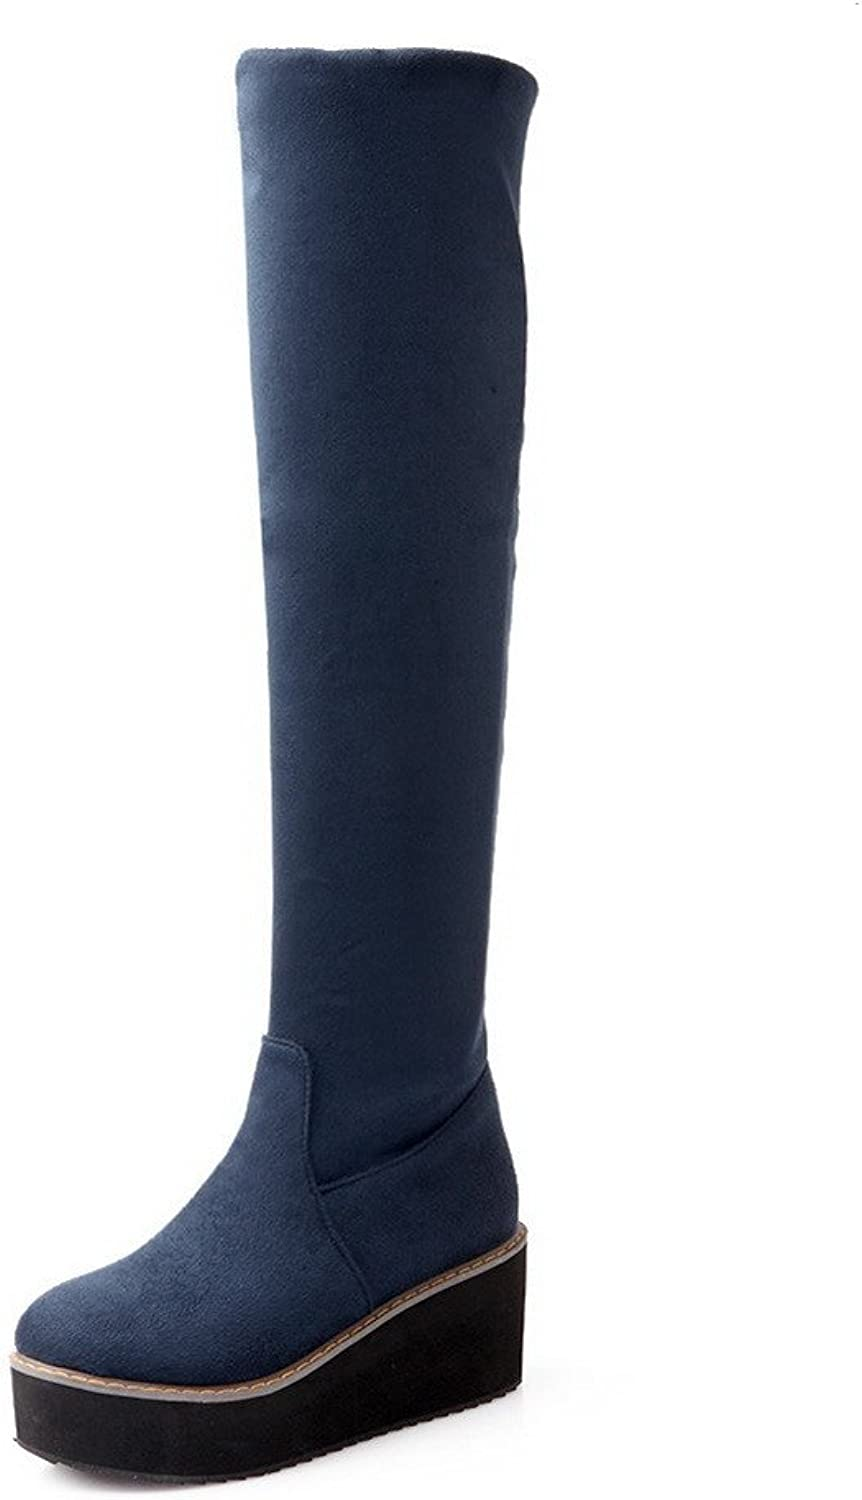 WeenFashion Women's Kitten-Heels Solid Round Closed Toe Frosted Pull-on Boots